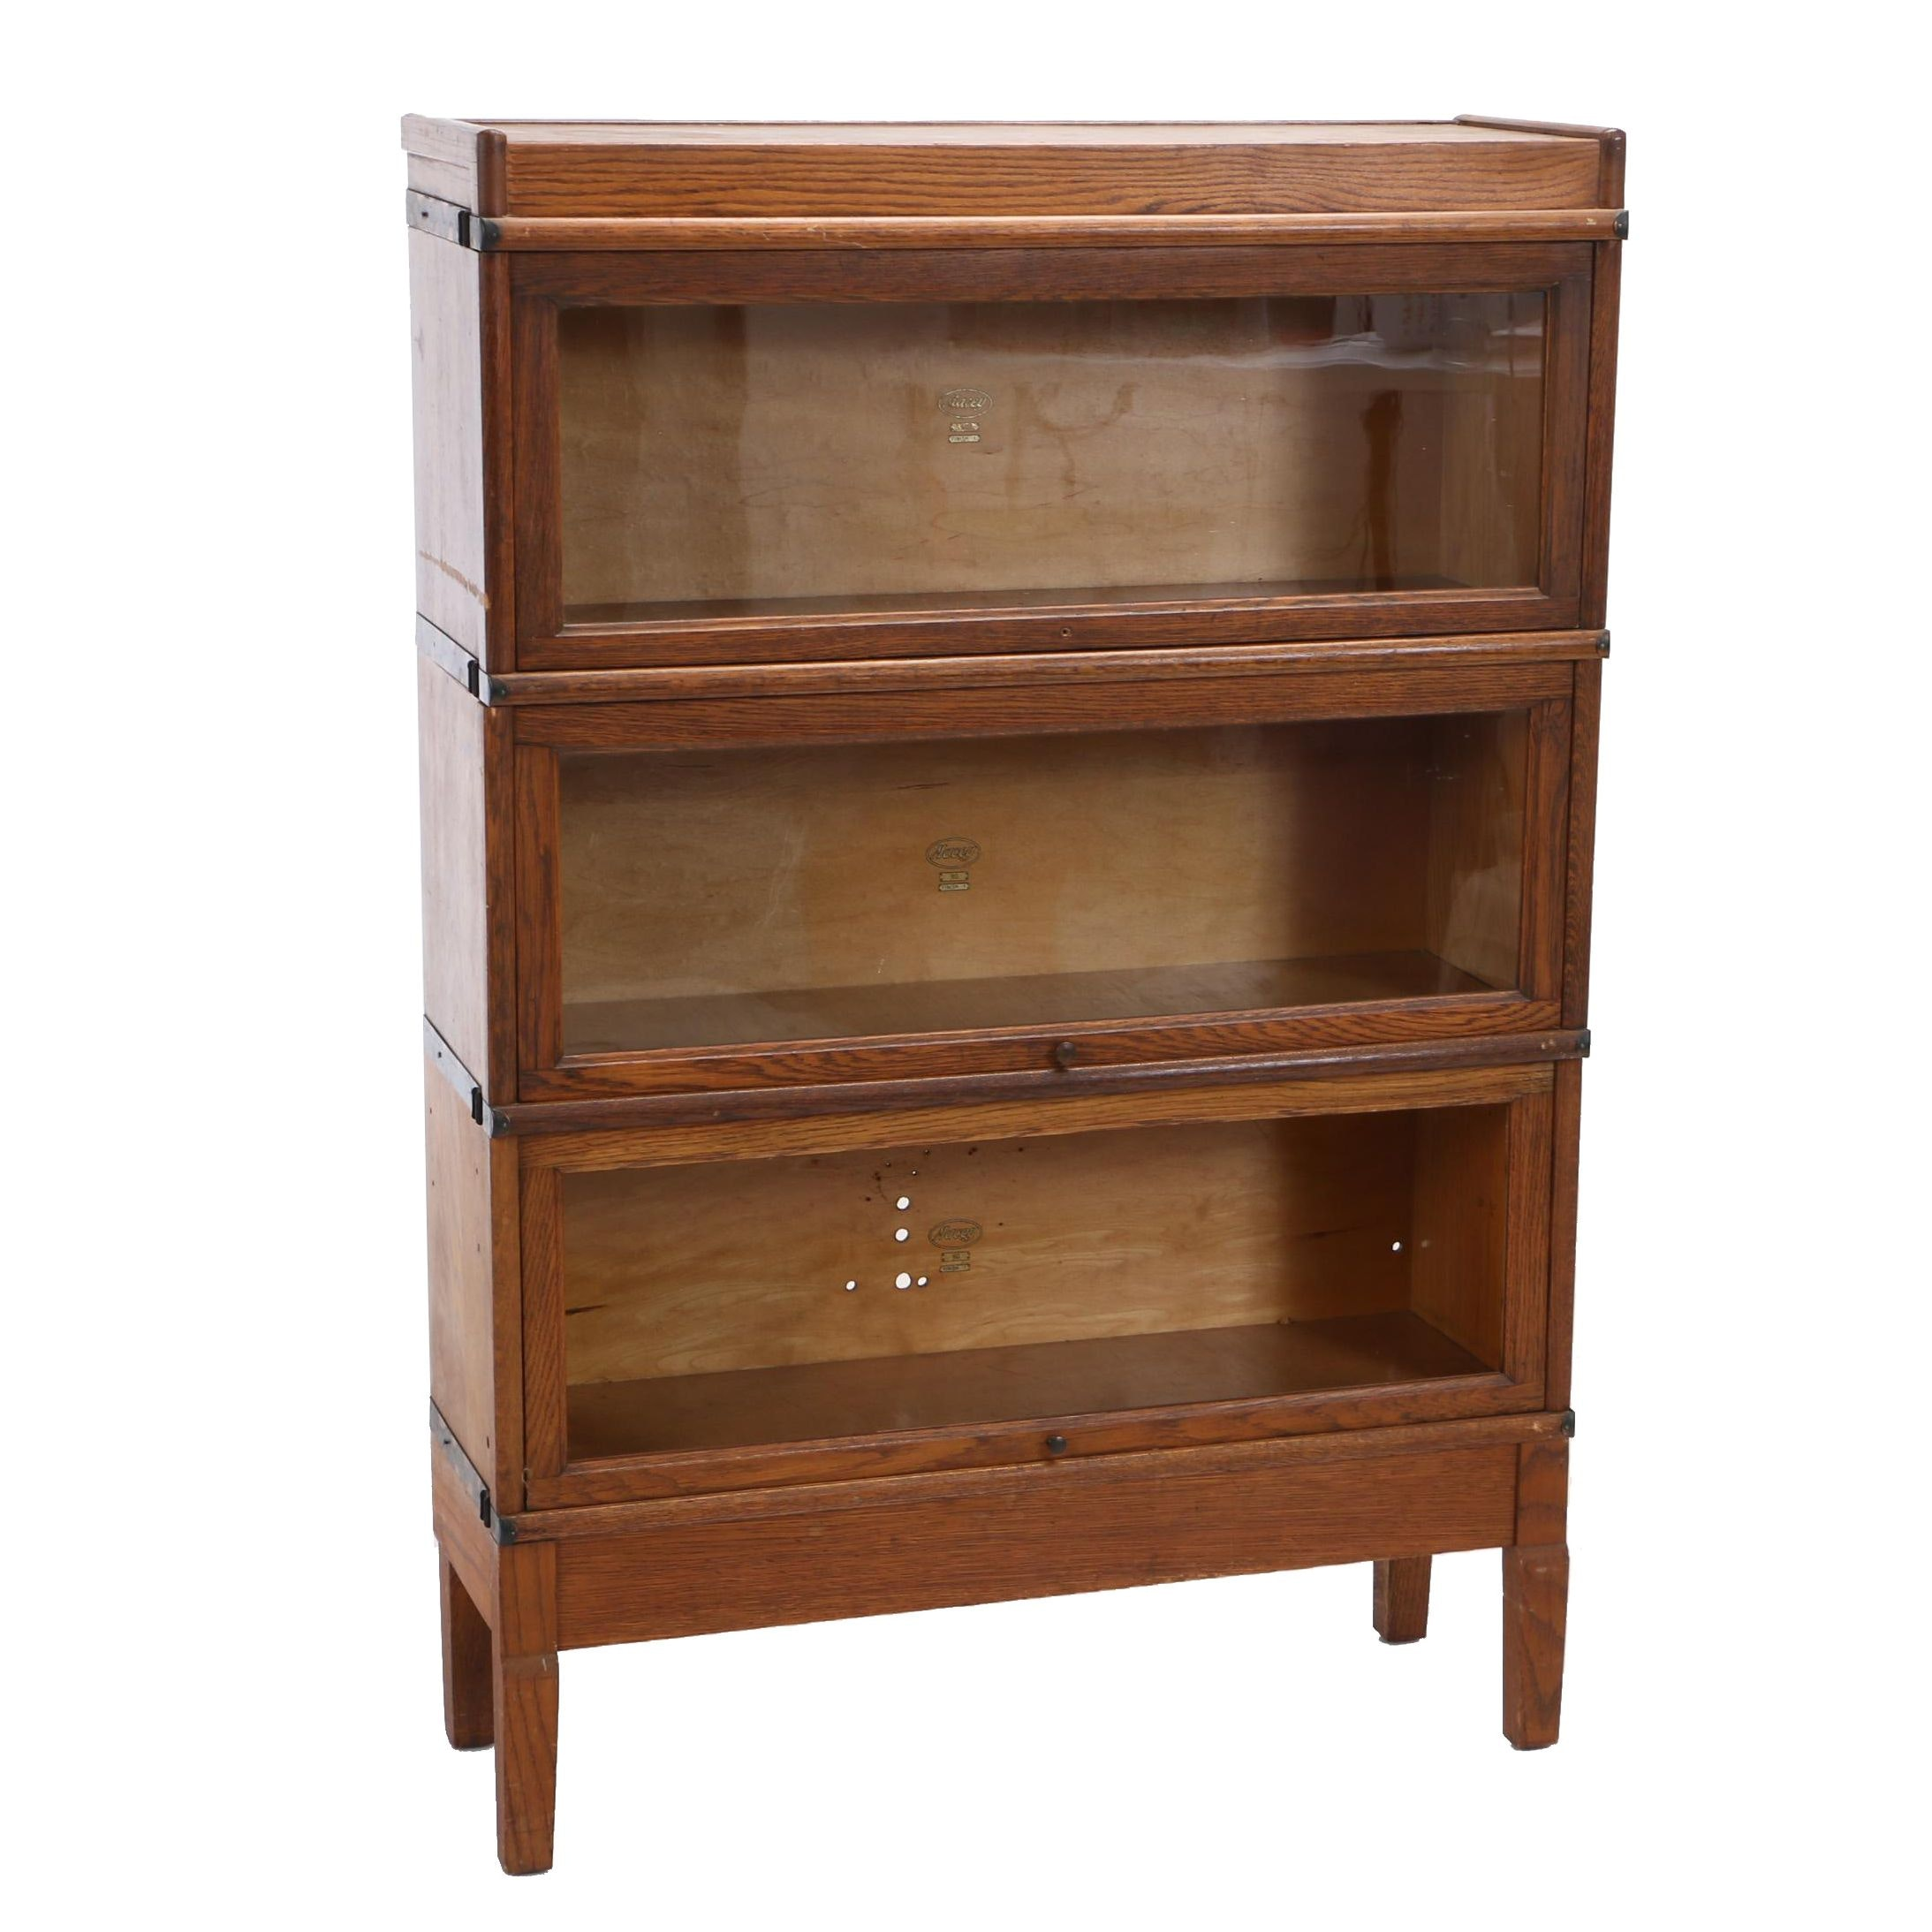 Oak Three-Section Stacking Bookcase by Macey, Early 20th Century